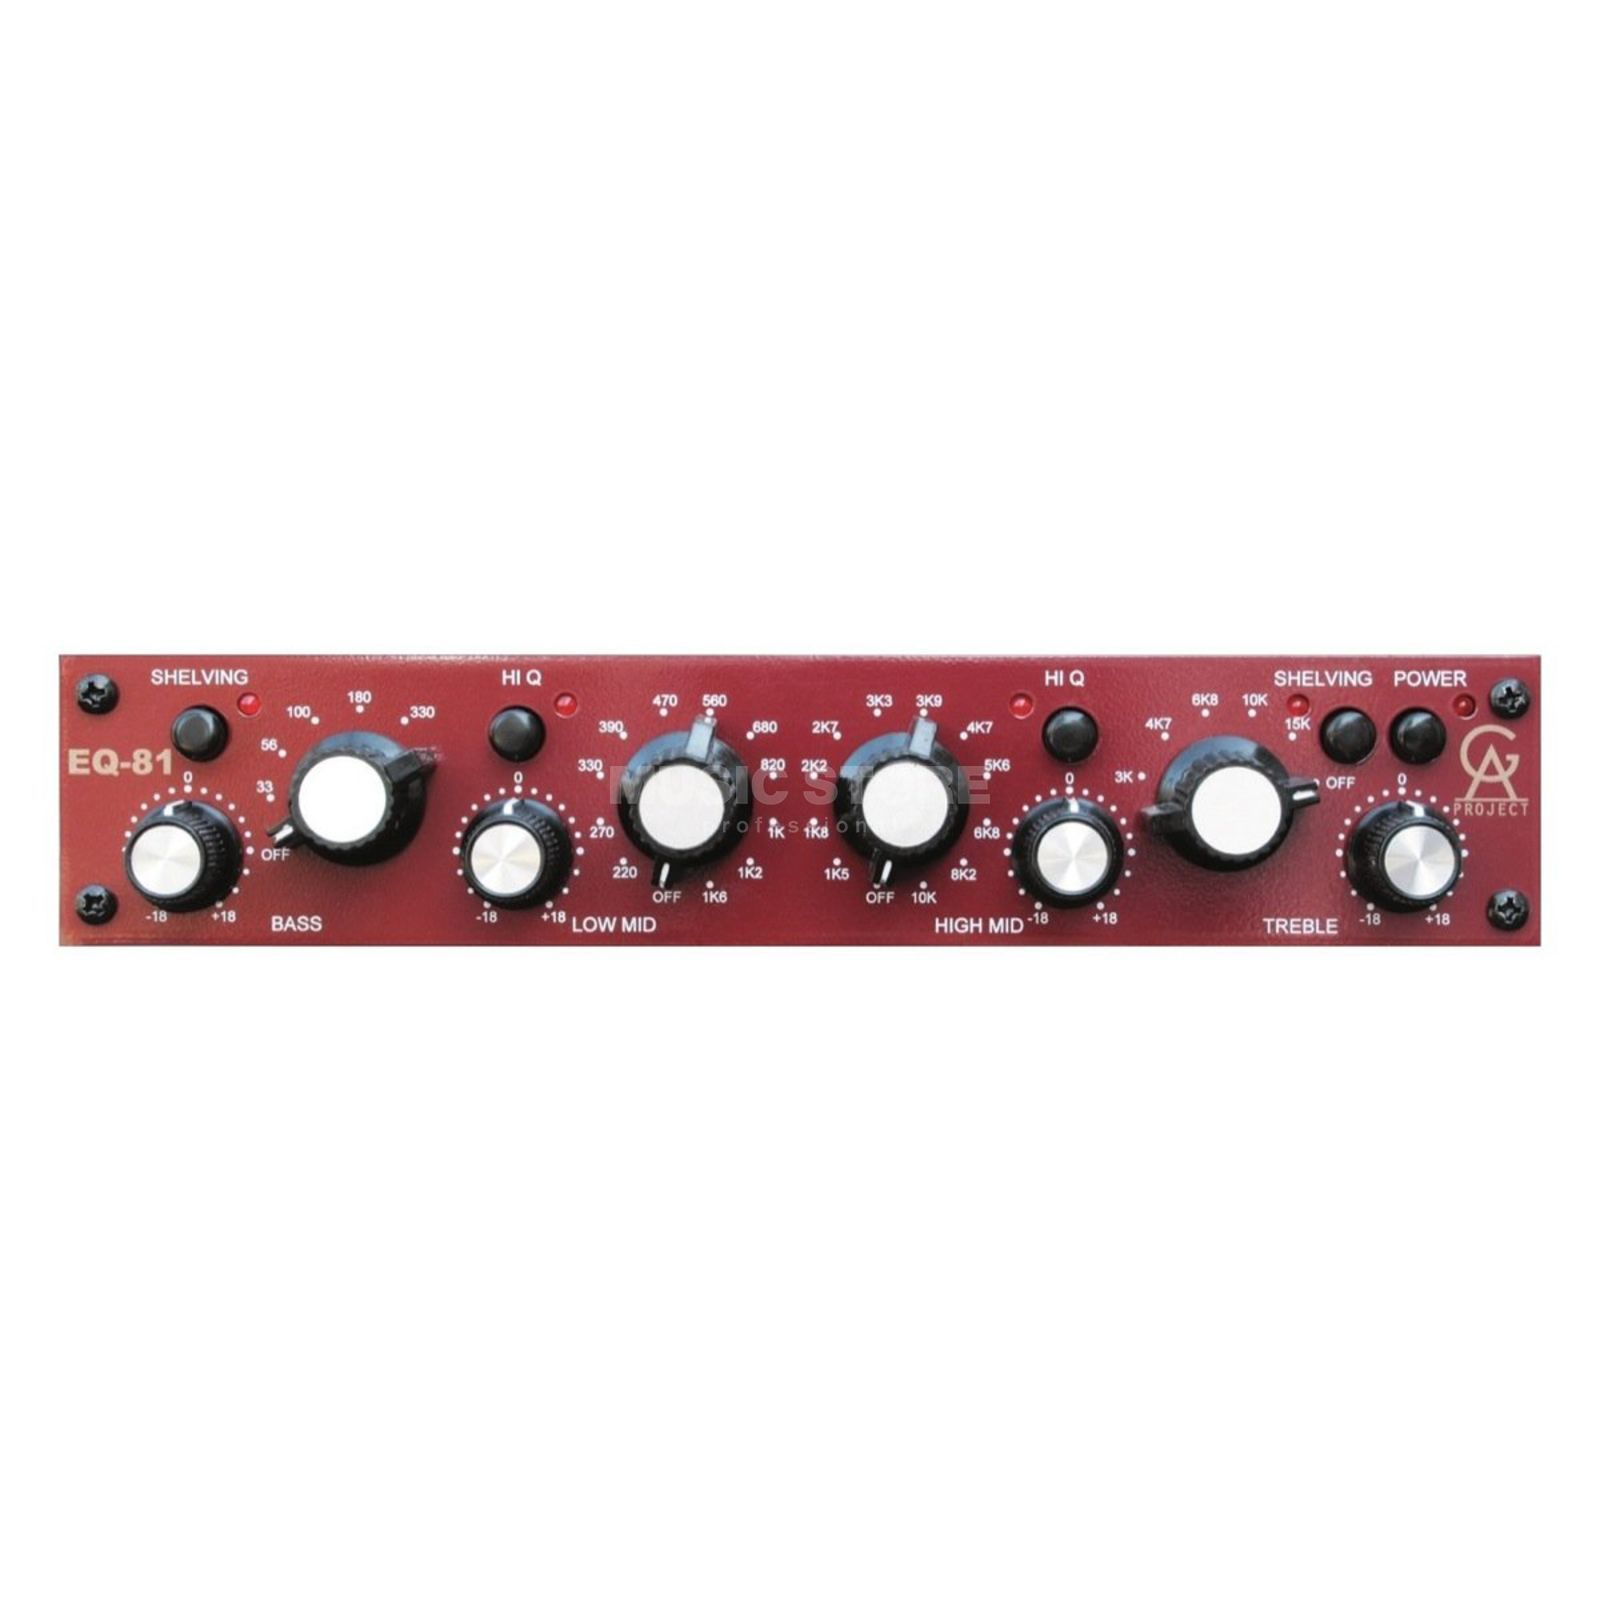 Golden Age Project EQ-81 Neve Style Equalizer Produktbillede